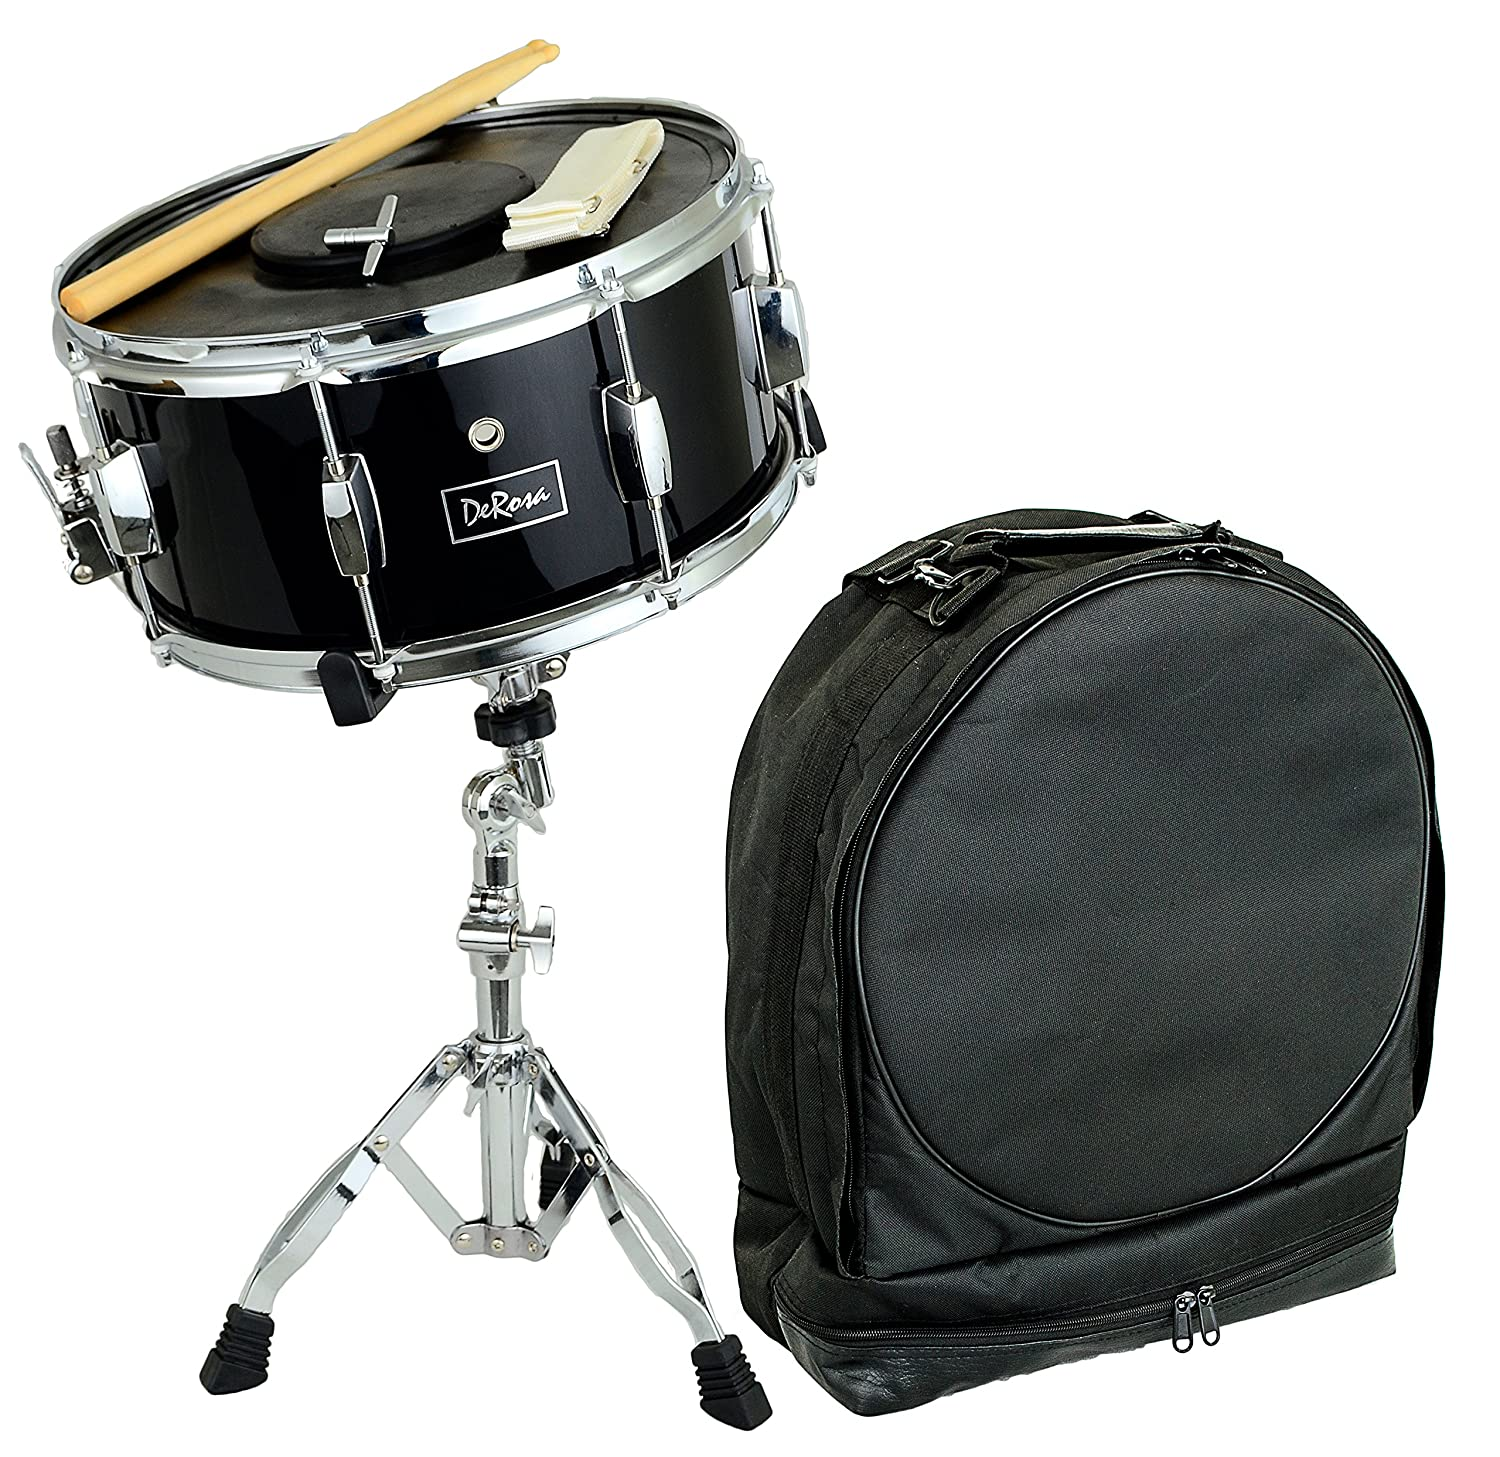 DeRosa DRMS14 Snare Drum Kit with Stand, Drumsticks, and Carrying Bag- BLack Bridgecraft DRMS14-BKQ